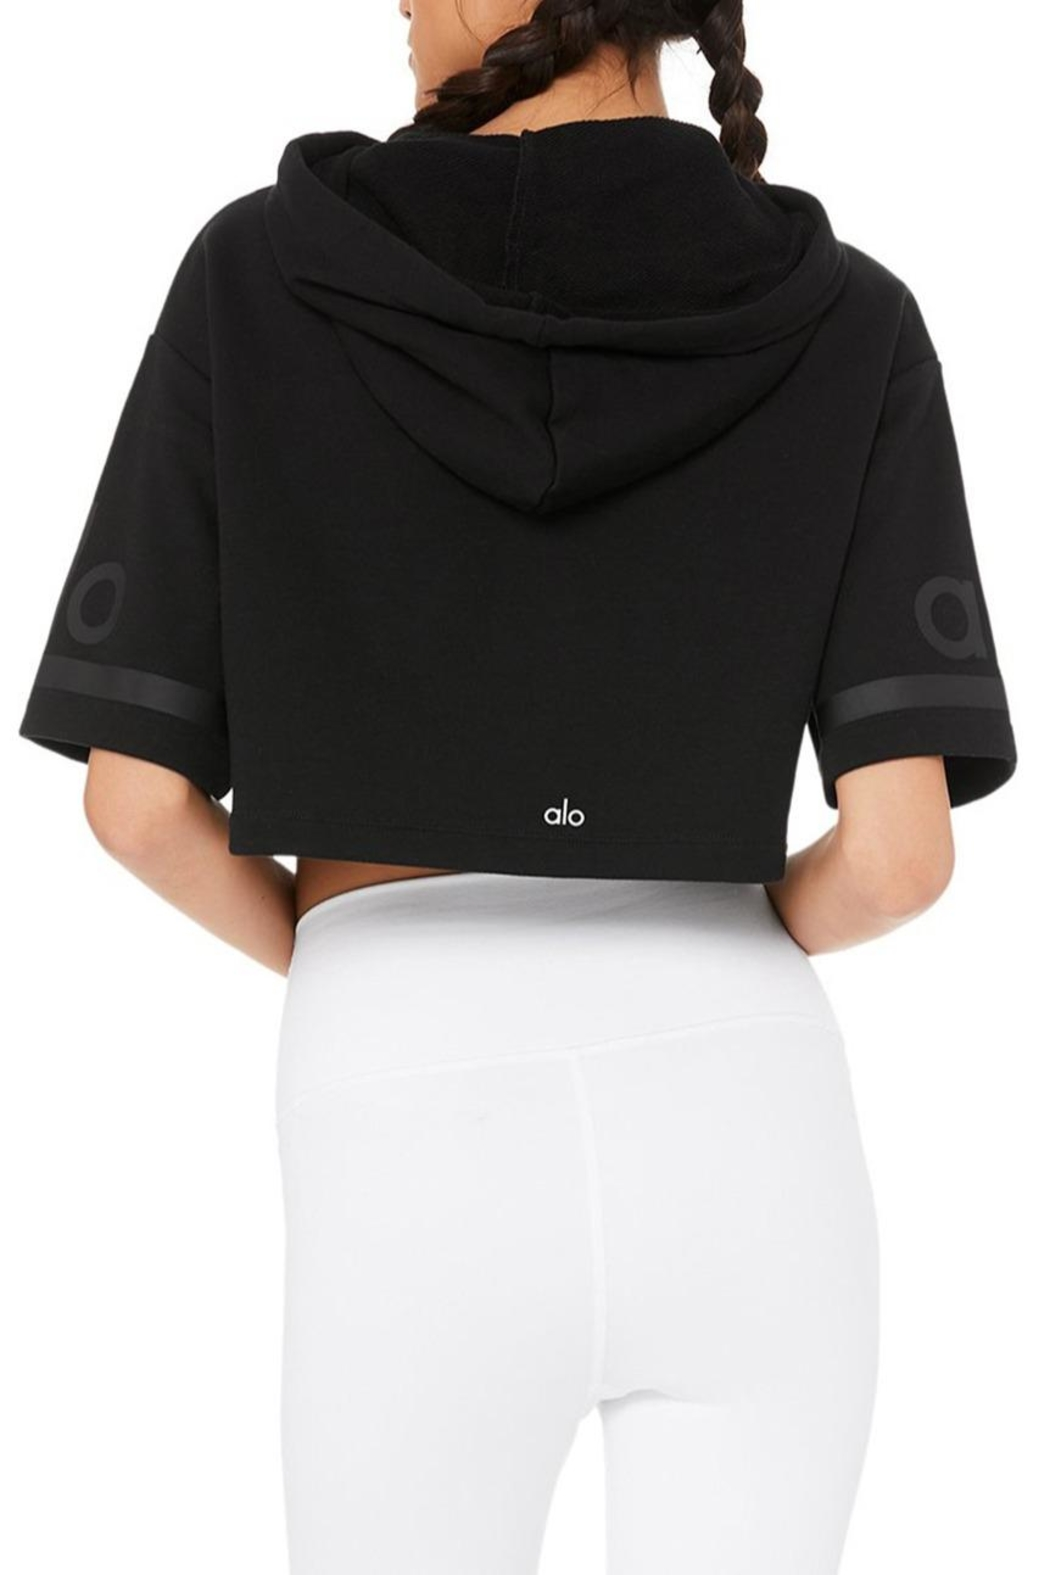 ALO Yoga Jersey Cropped Hoodie - Side Cropped Image